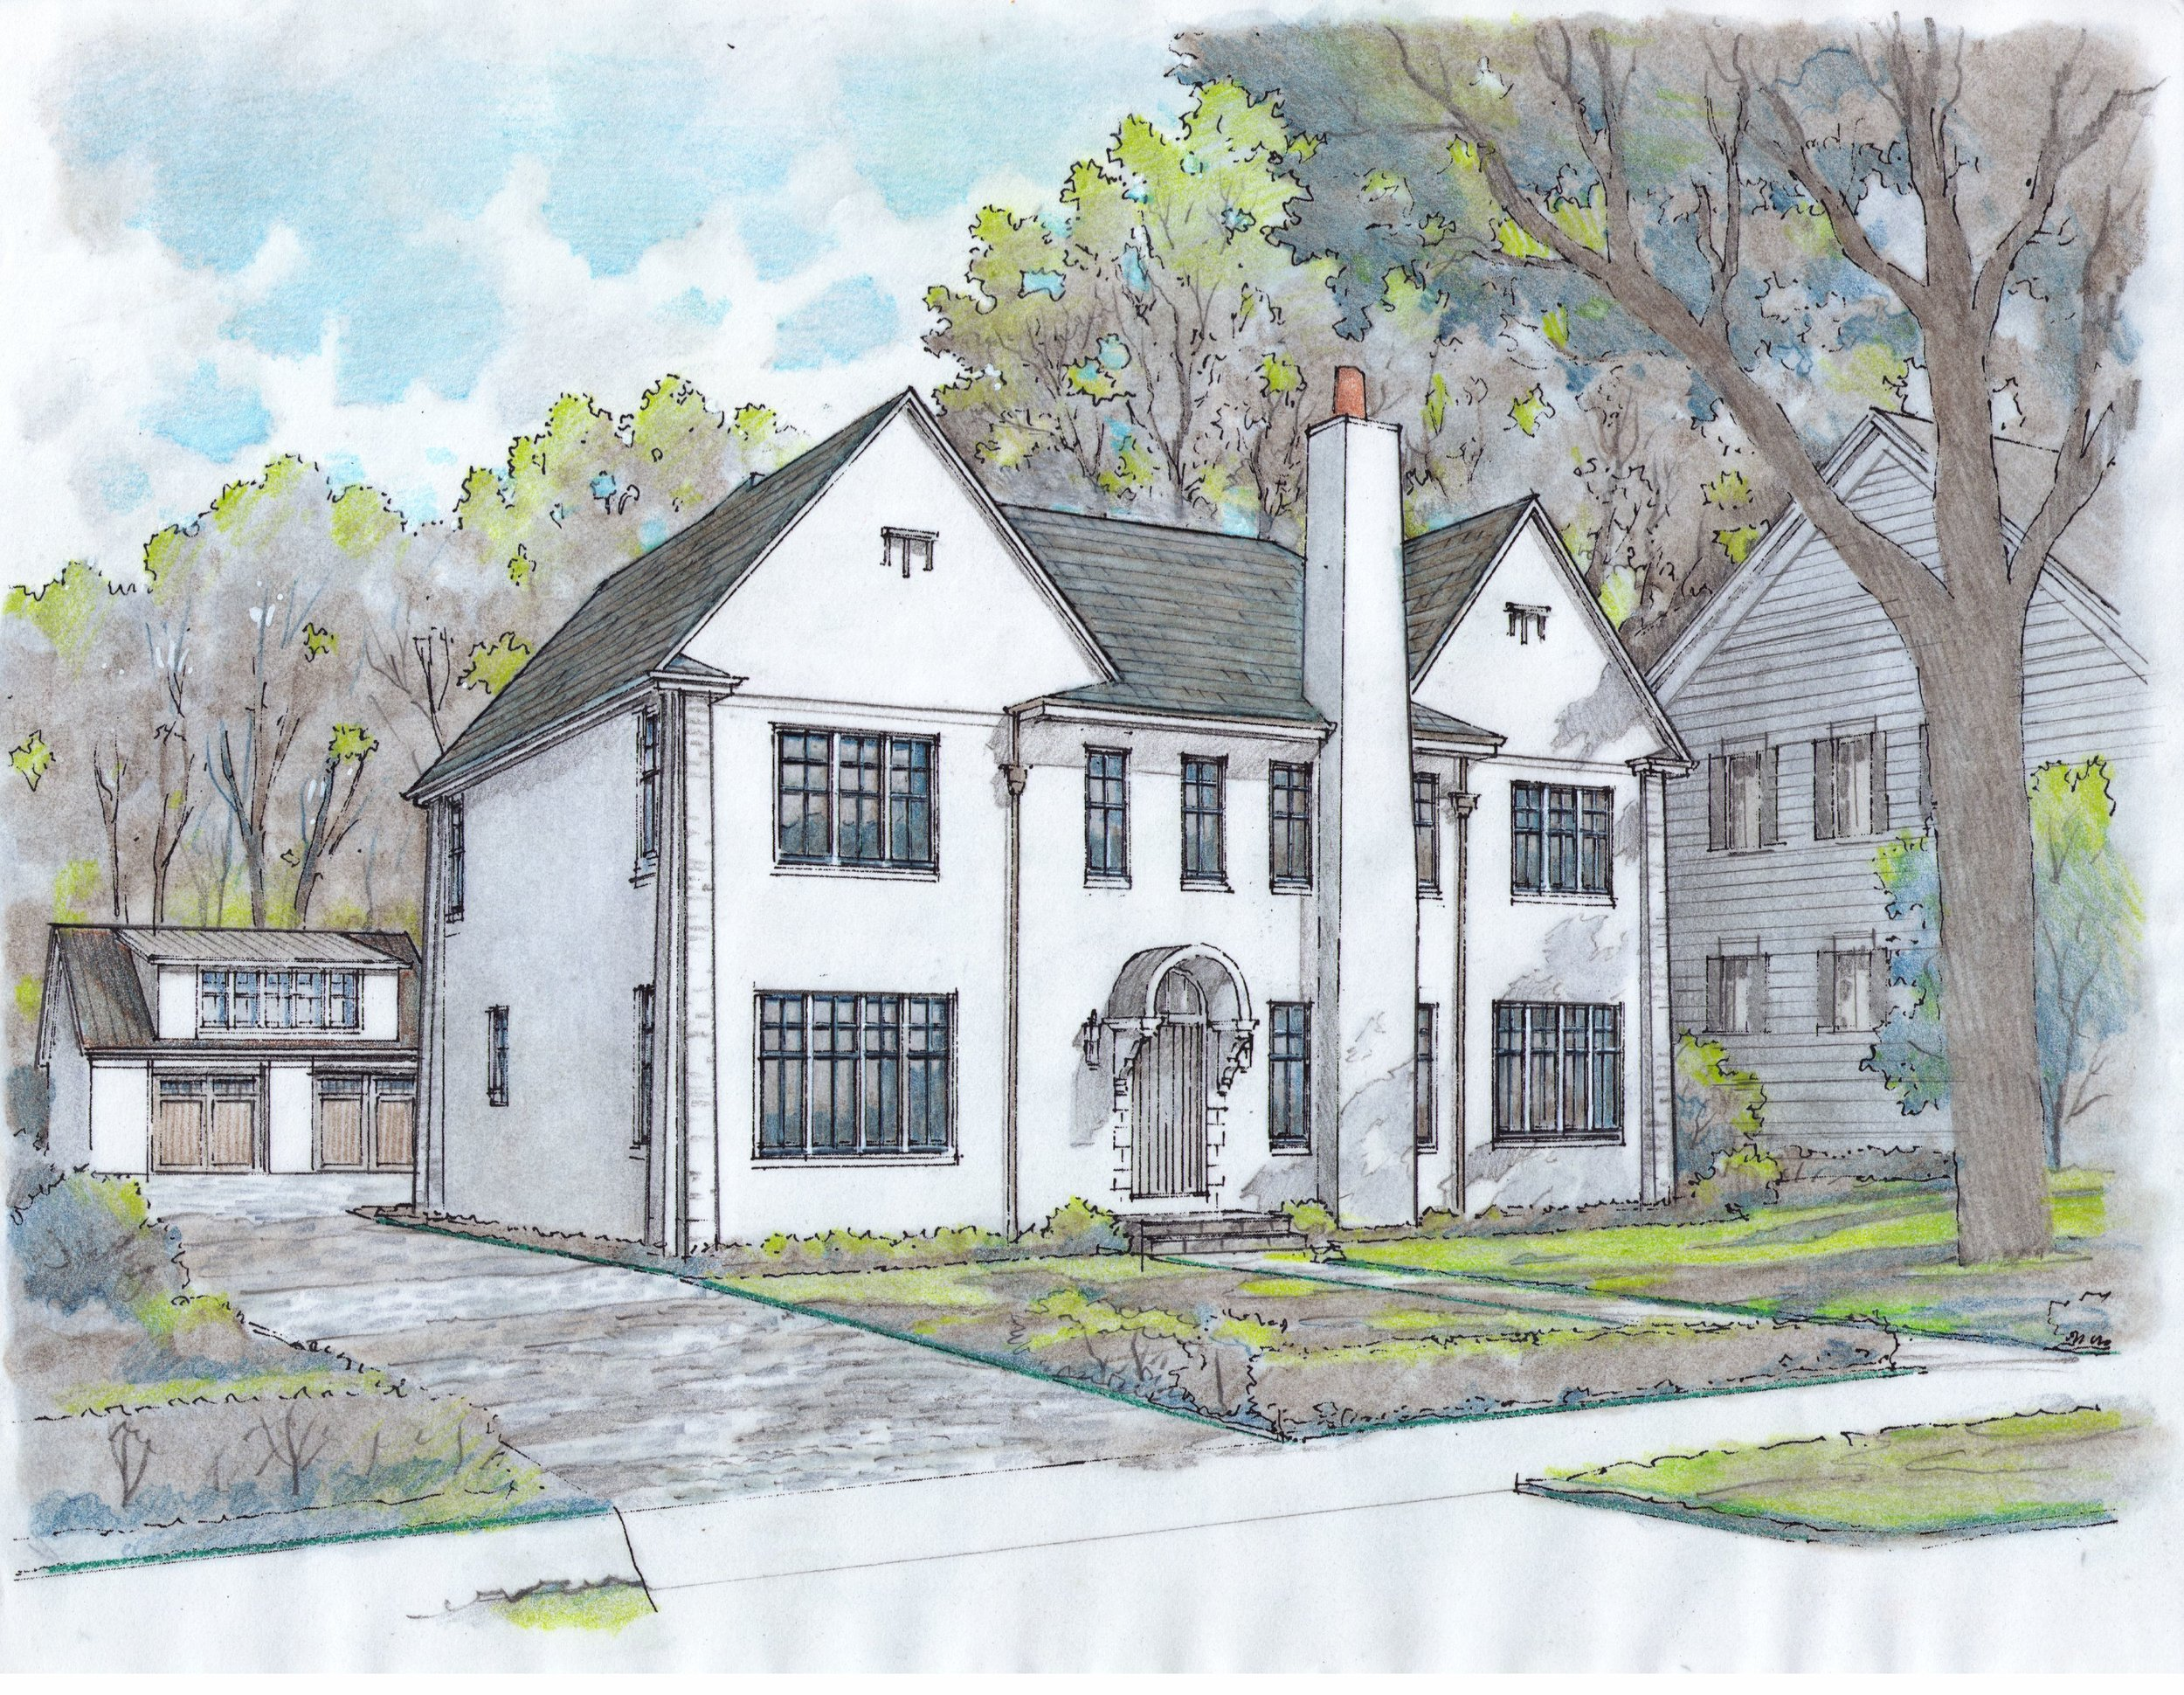 New home construction on Maplewood Avenue, in Maplewood, New Jersey now completed.